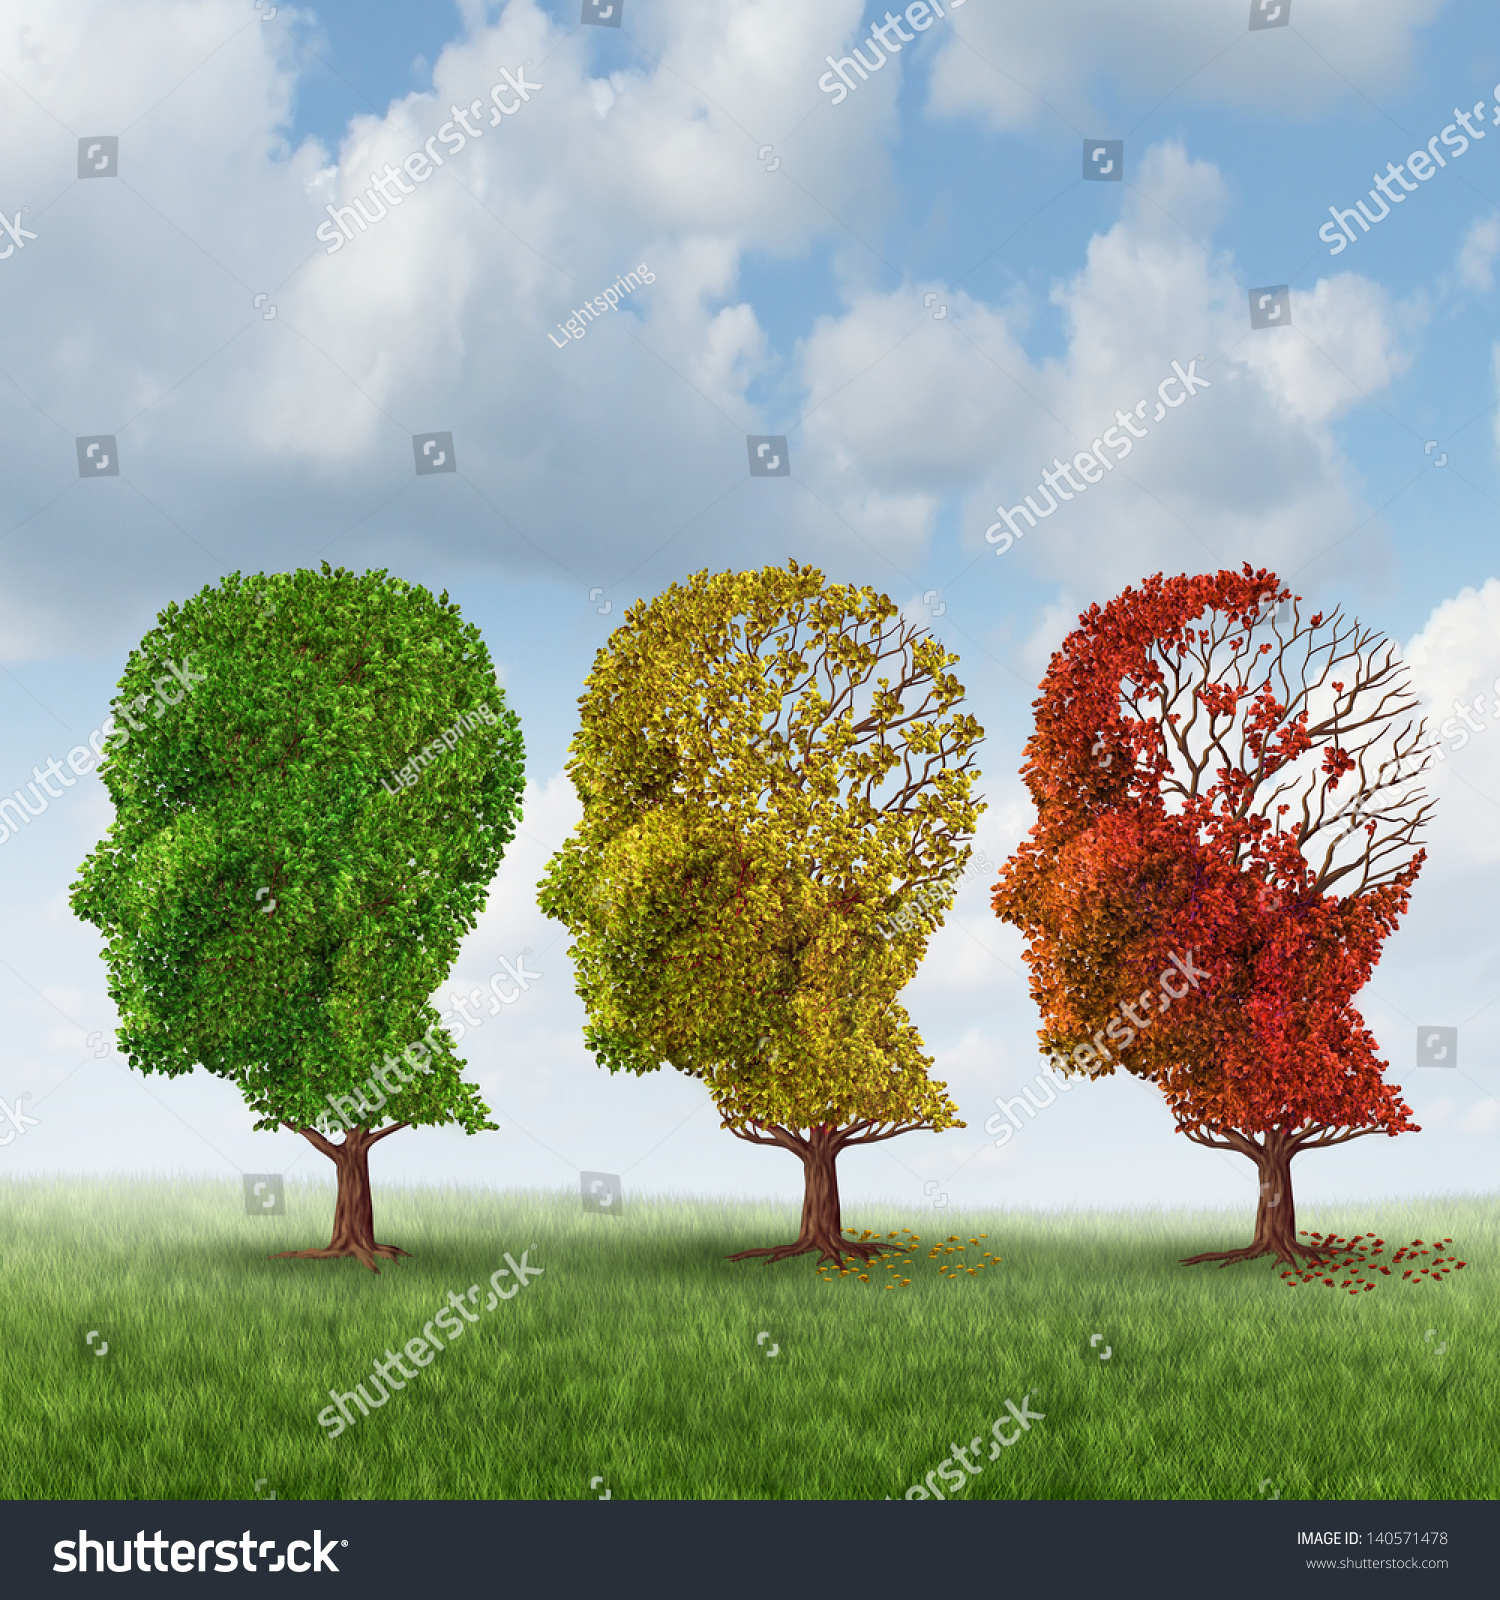 Royalty-free Brain aging and memory loss due to… #140571478 Stock ...